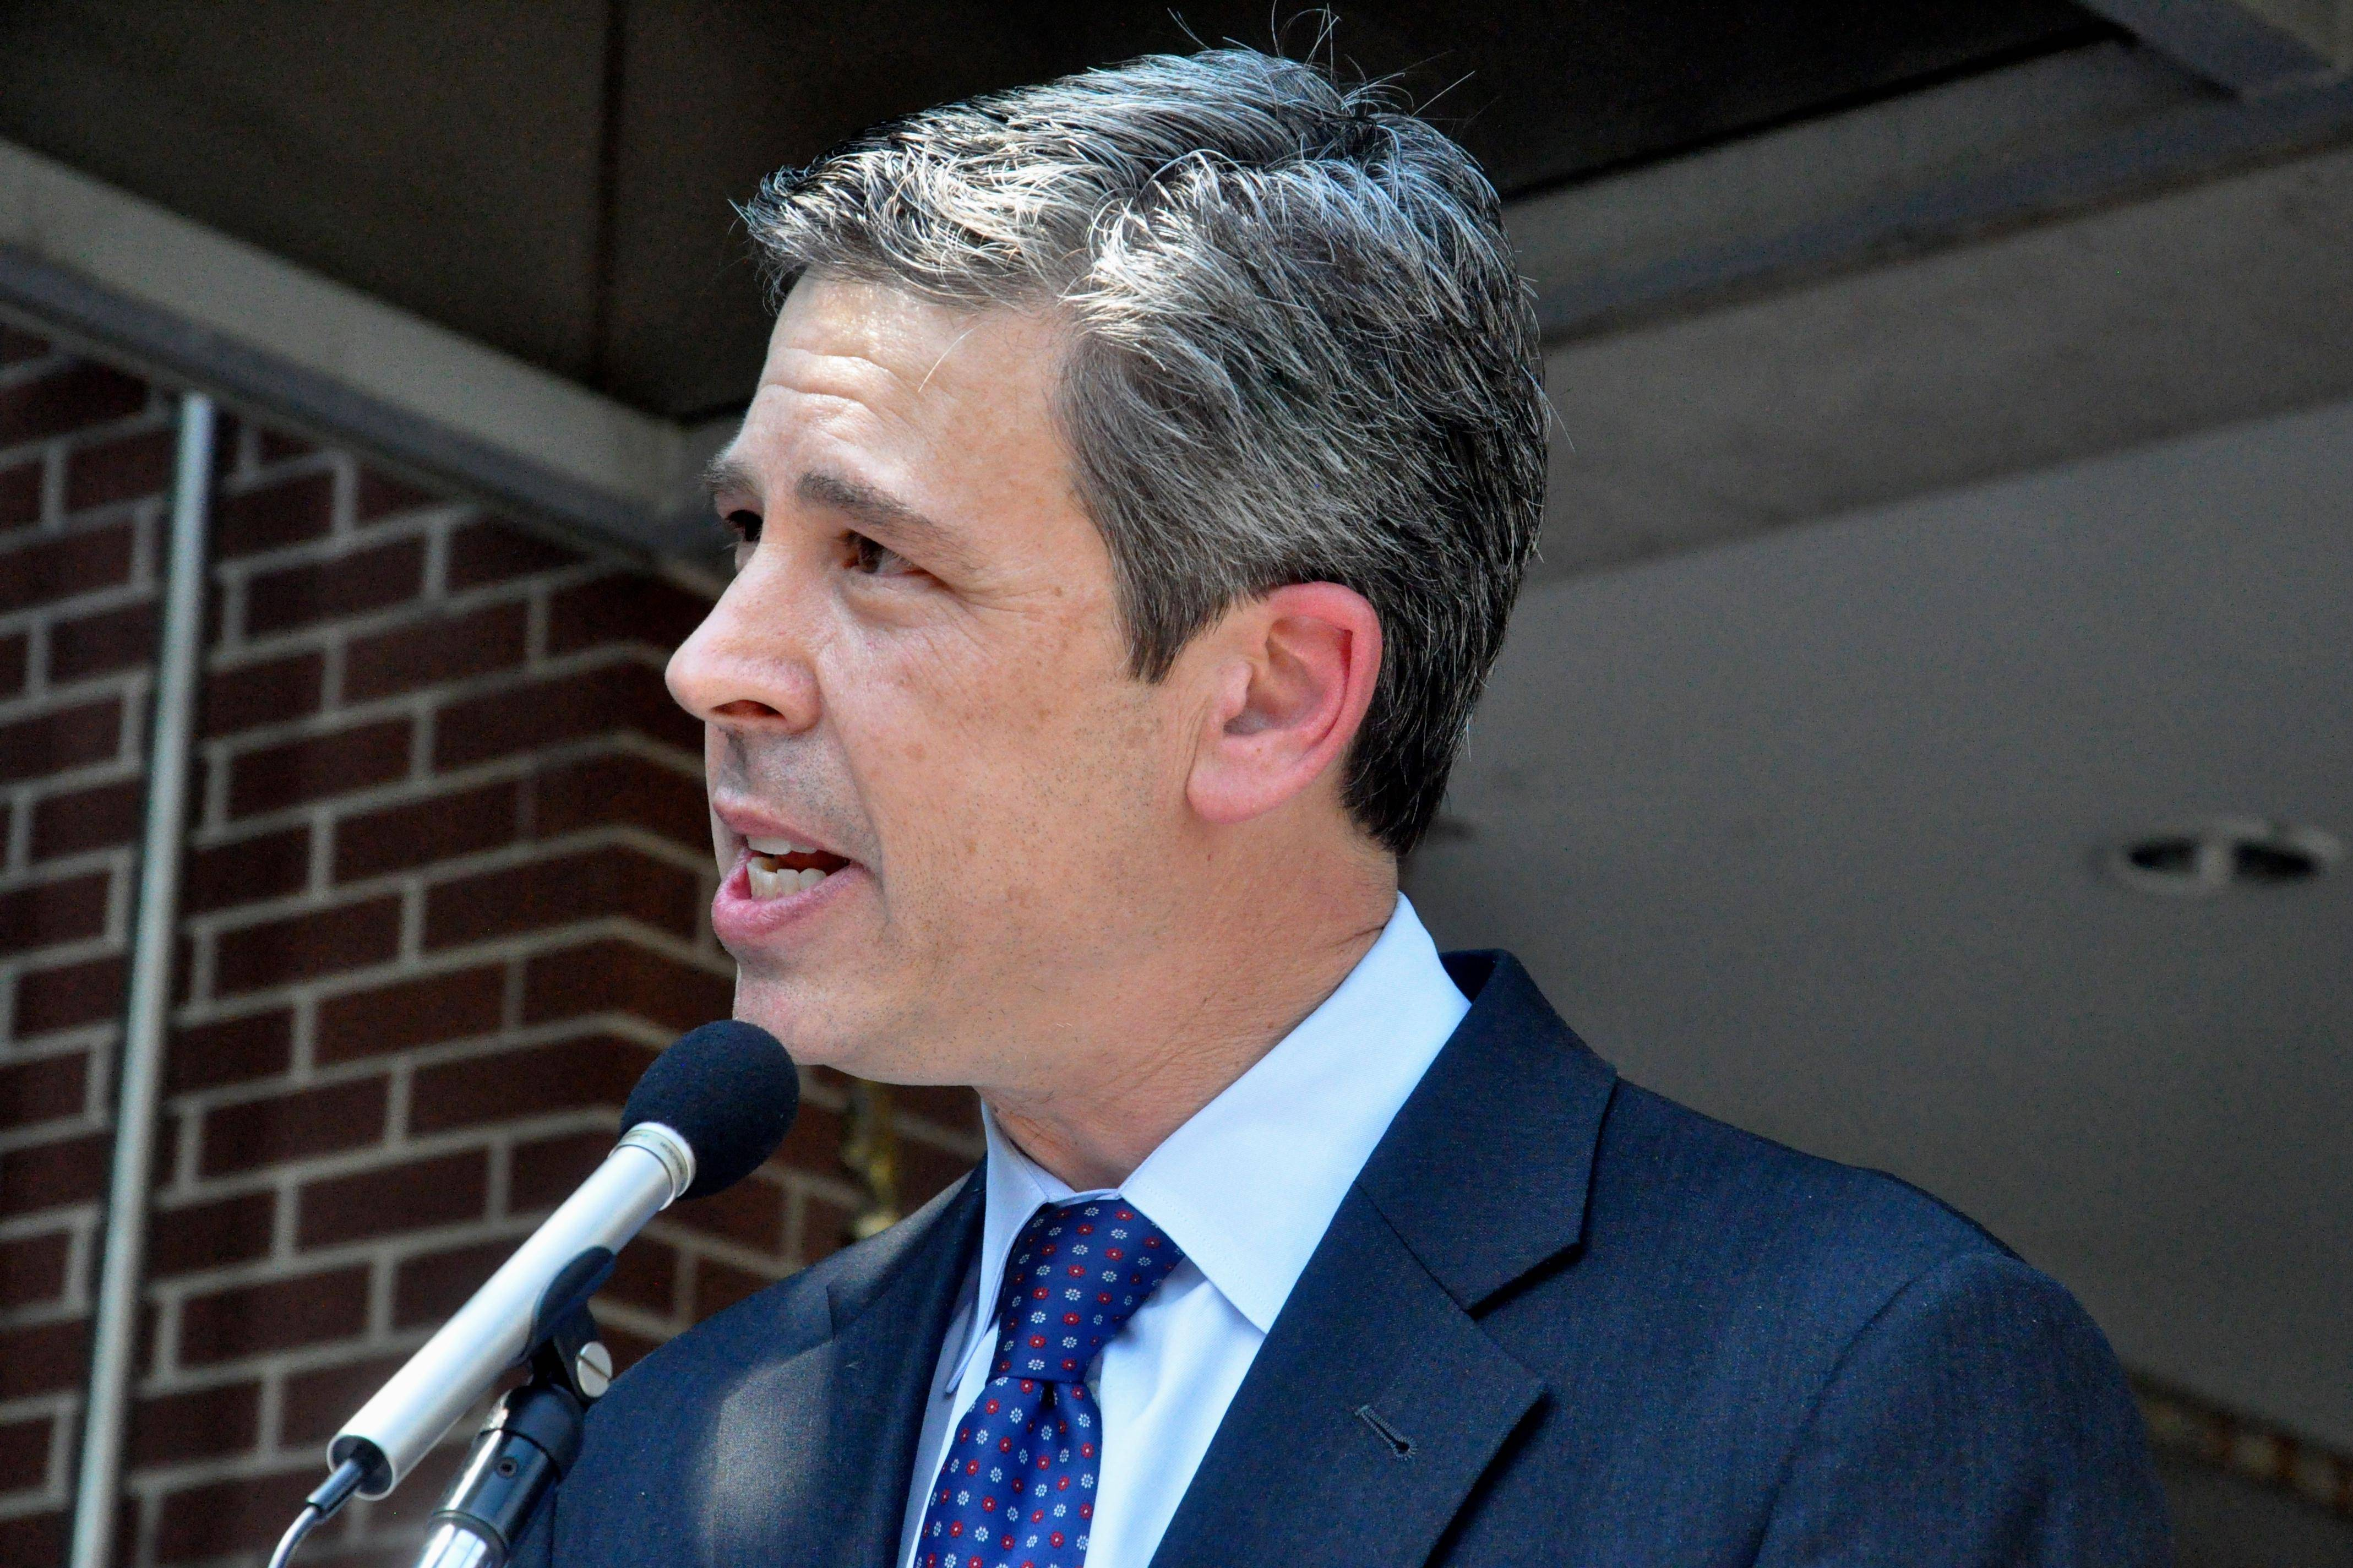 Berke again denies inappropriate relationship with senior